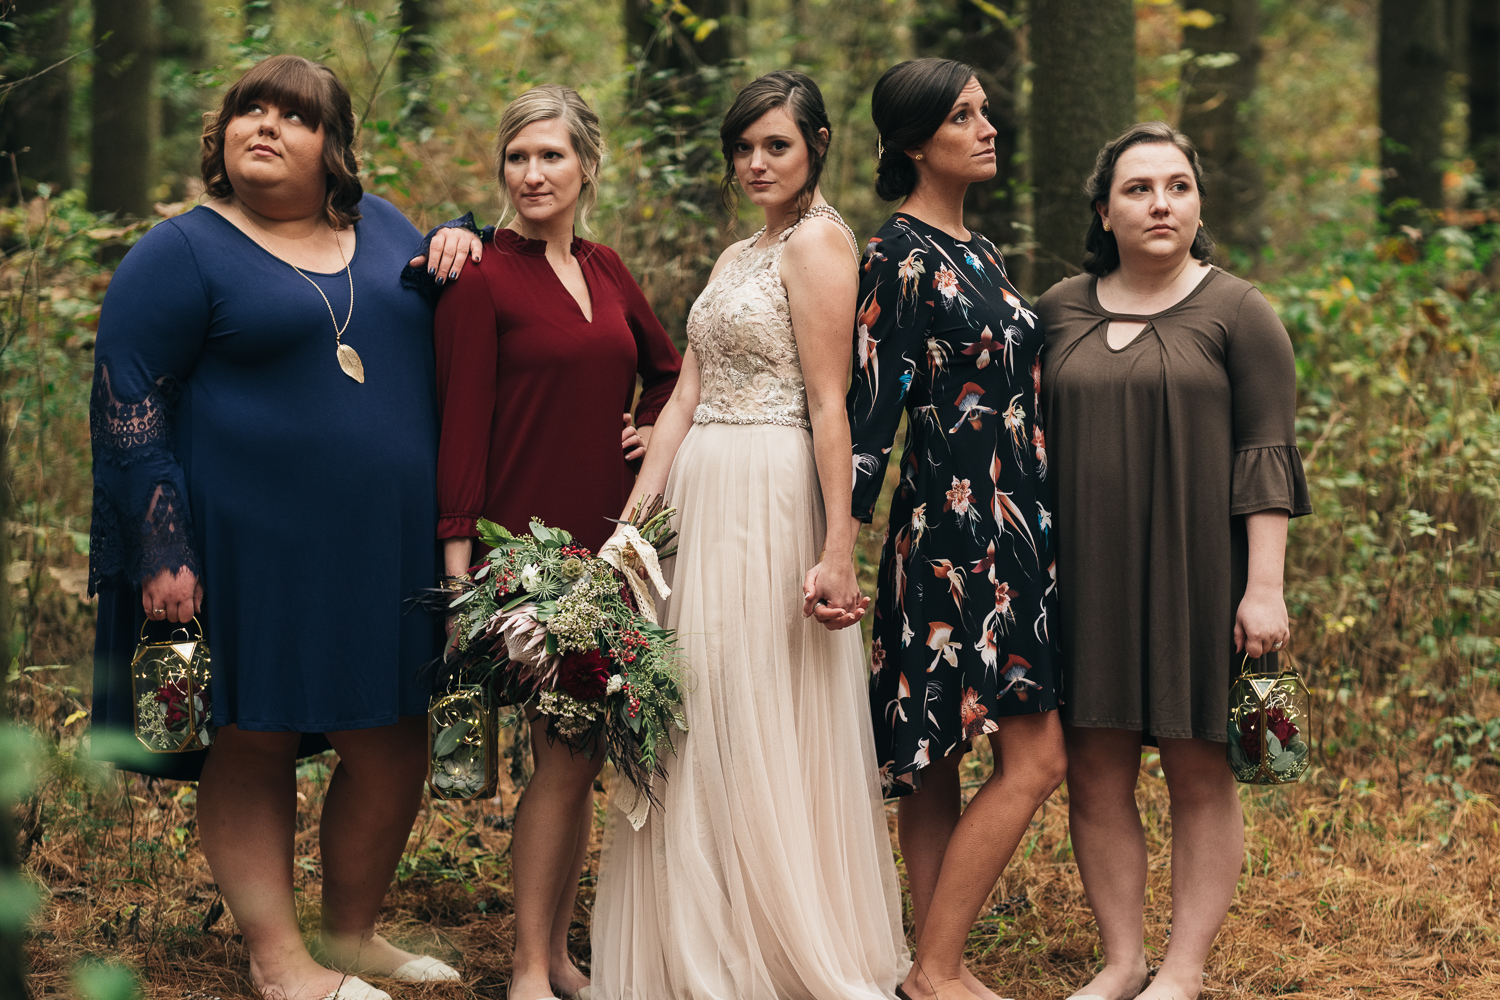 The bride stands with her bridesmaids in mix matched dresses at Oak Openings park in northwest Ohio for her fall wedding